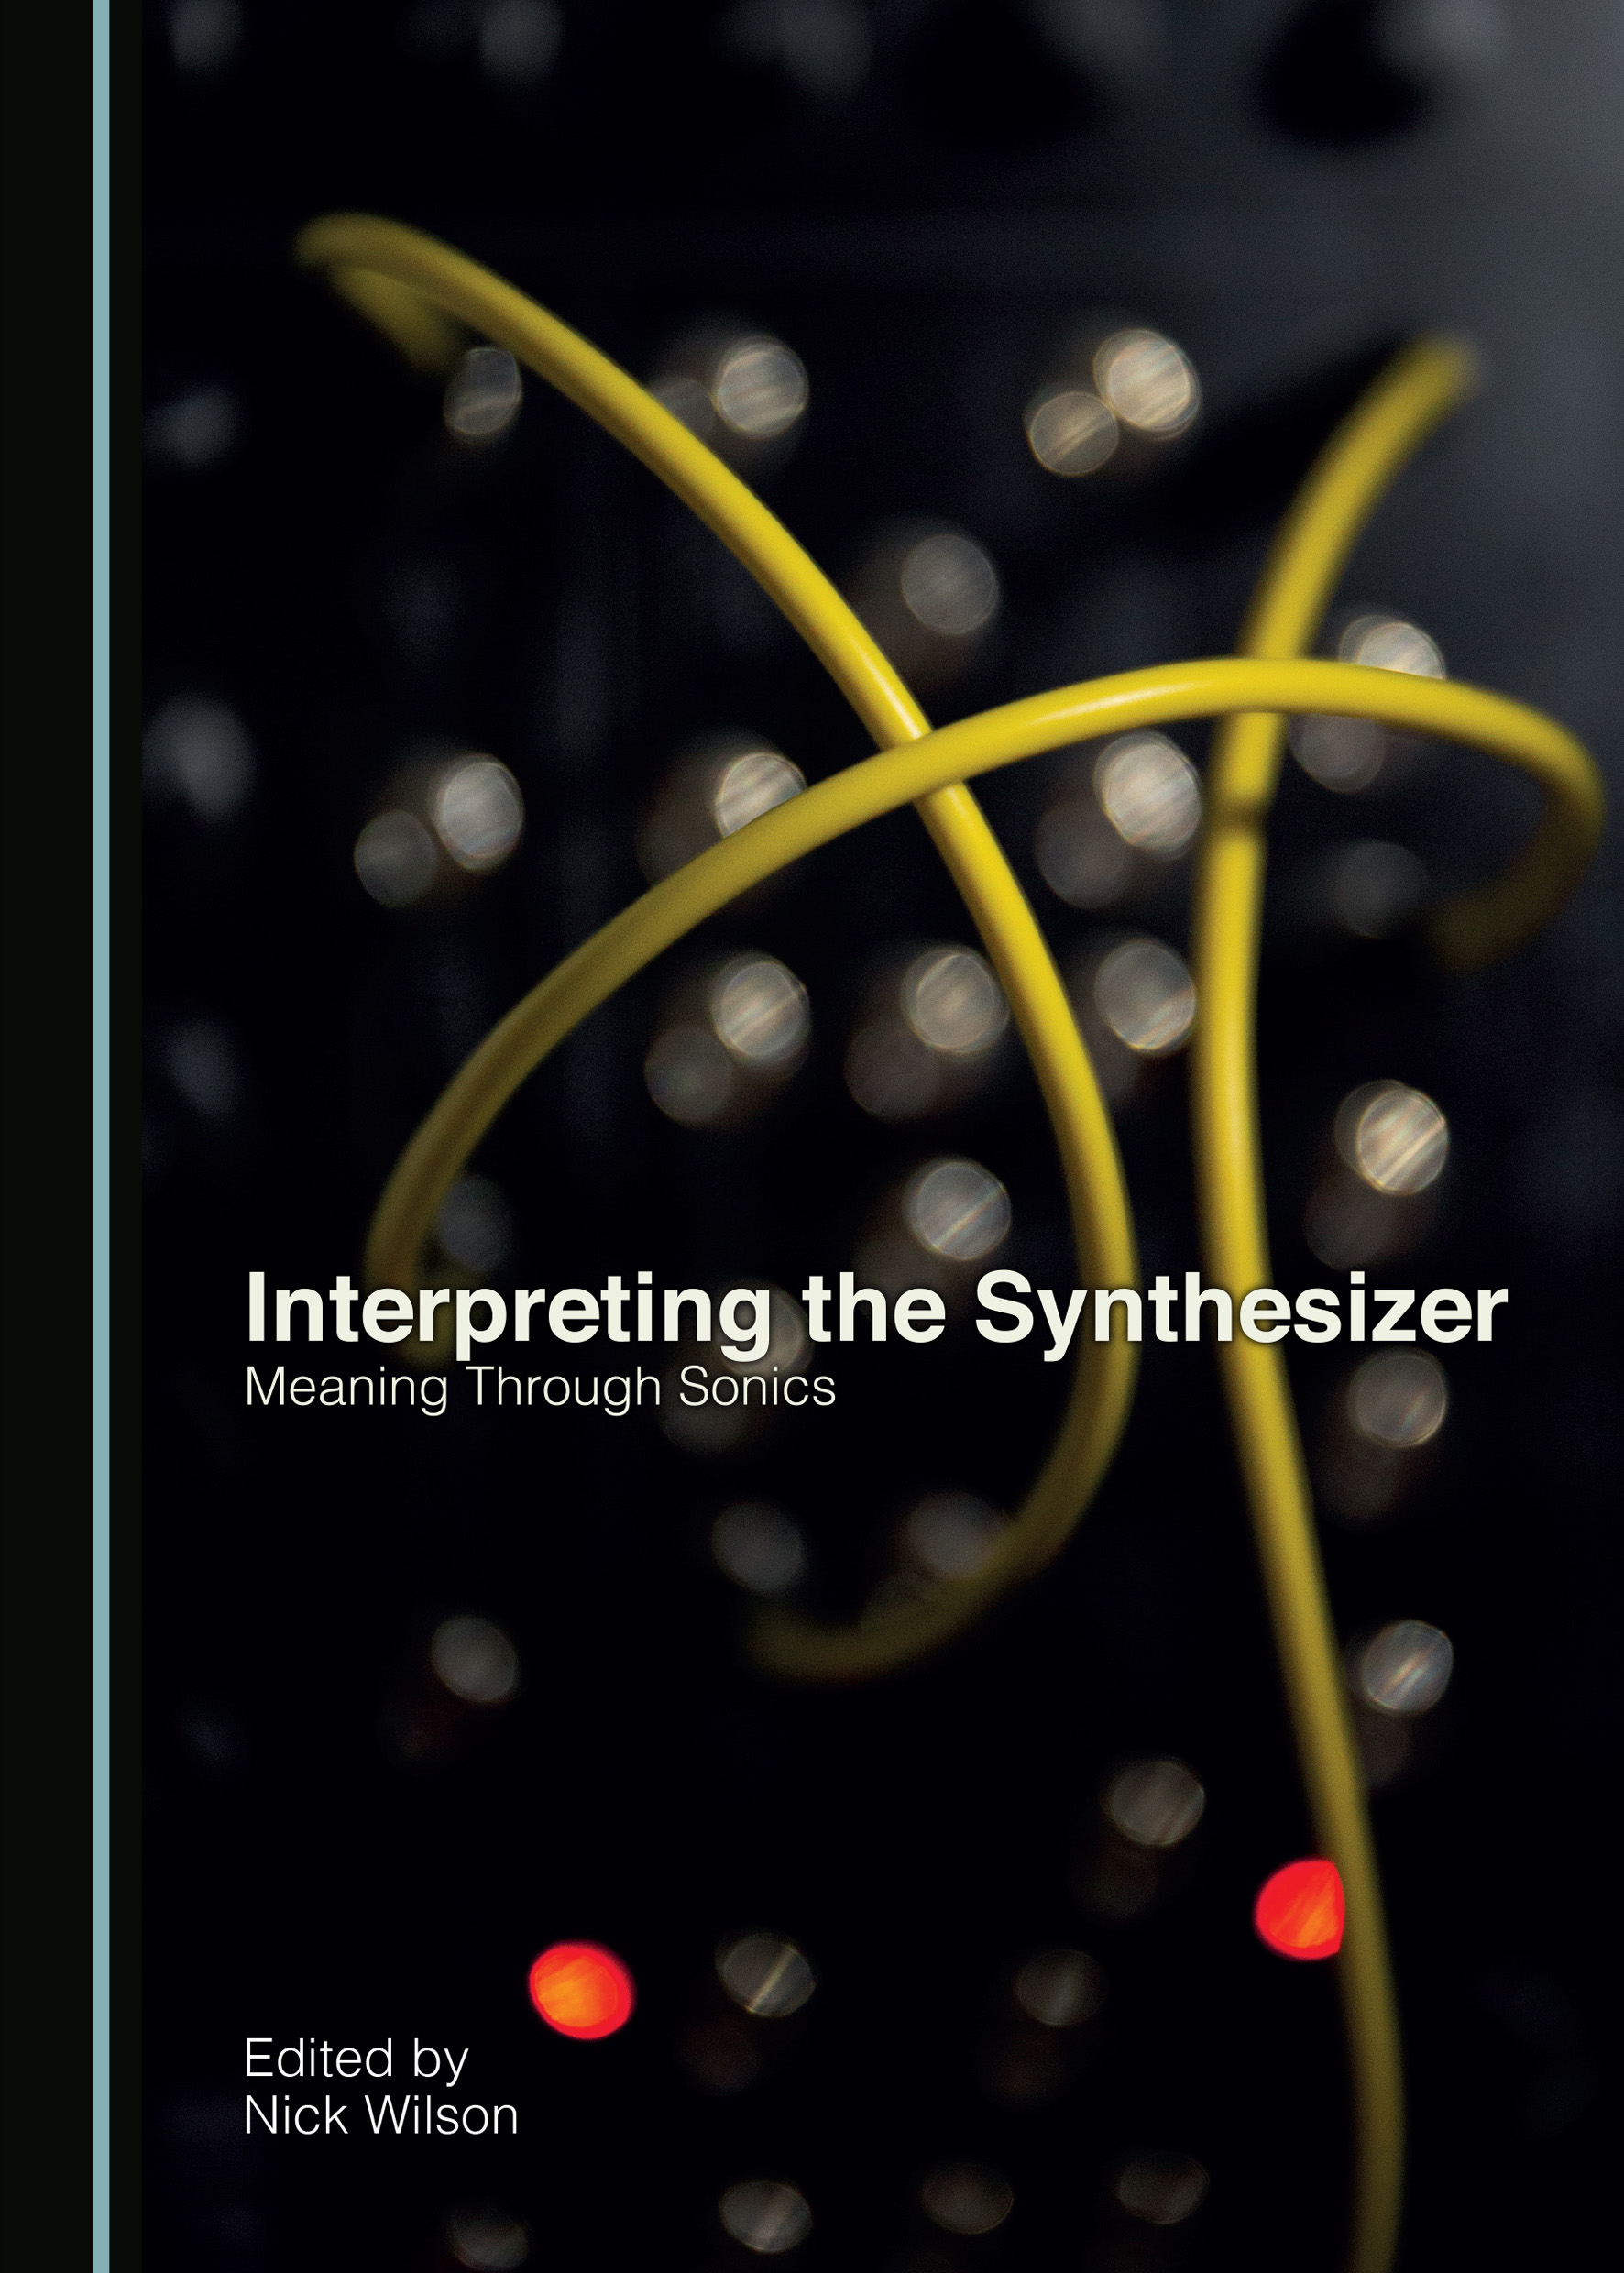 Interpreting the Synthesizer: Meaning Through Sonics